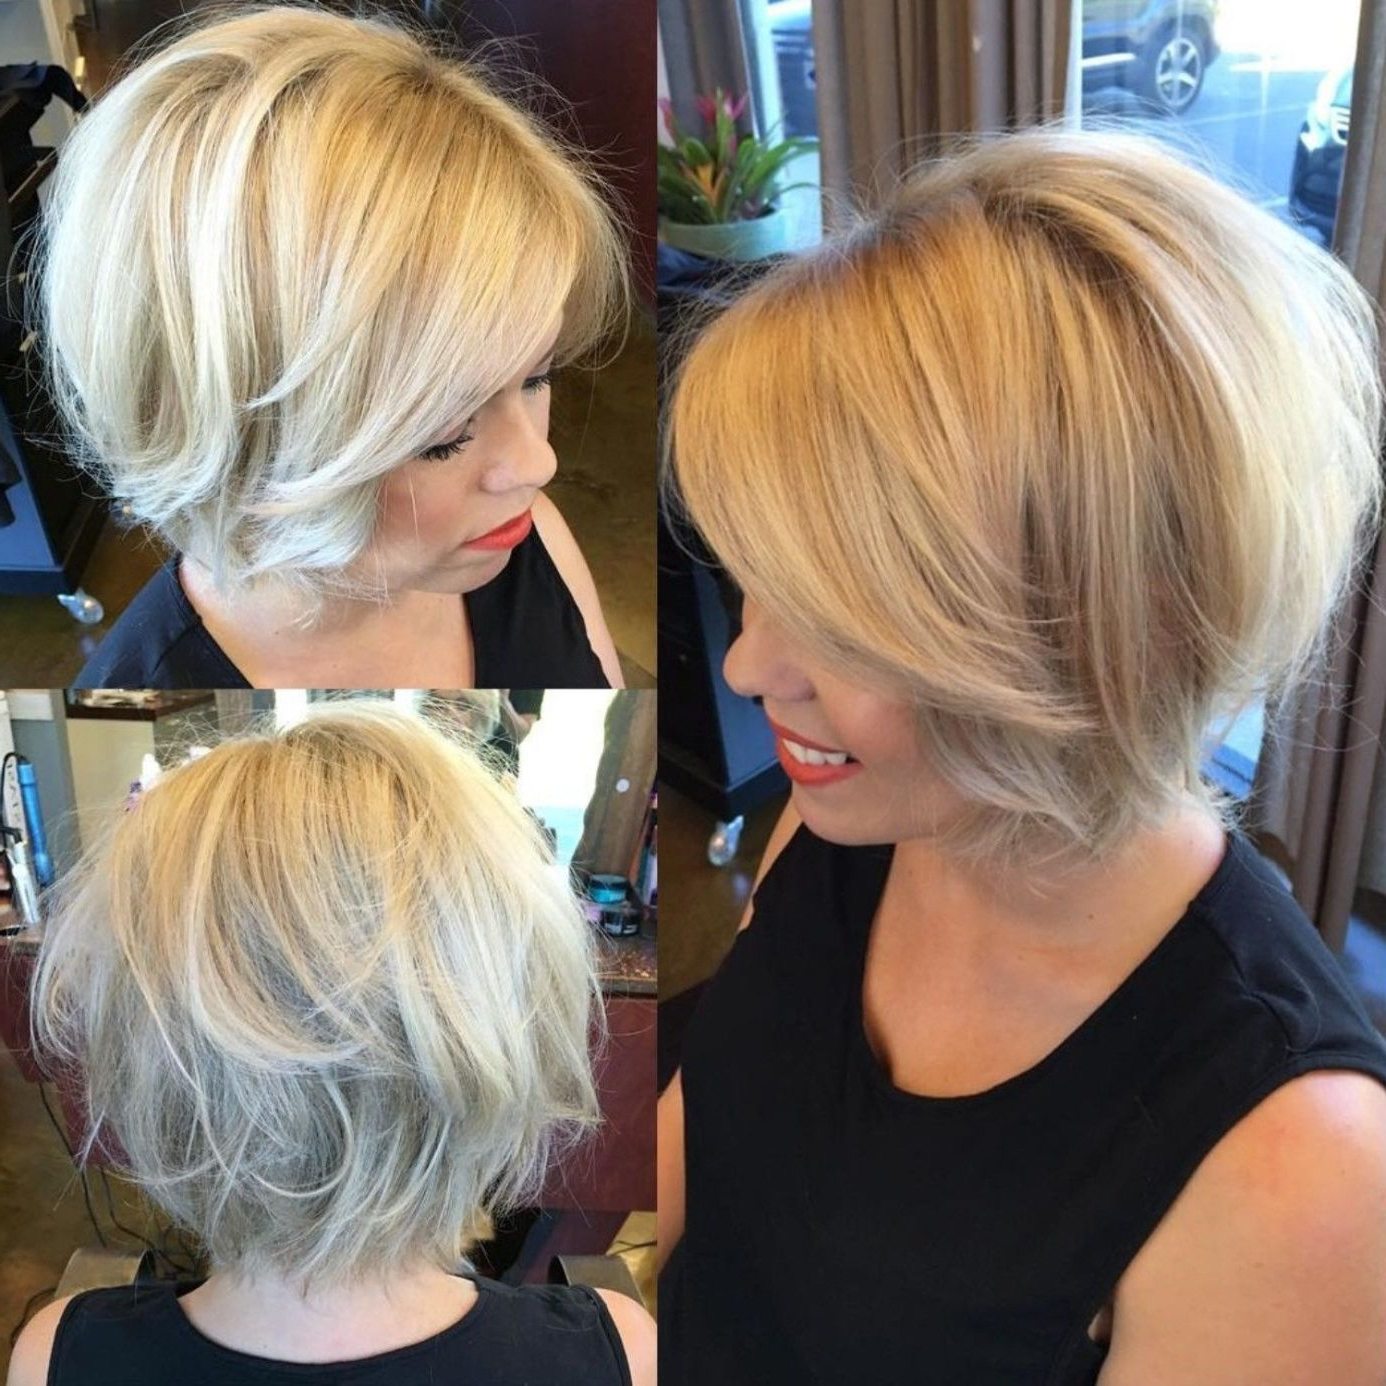 100 Mind Blowing Short Hairstyles For Fine Hair | Hair | Pinterest With Southern Belle Bob Haircuts With Gradual Layers (View 1 of 20)